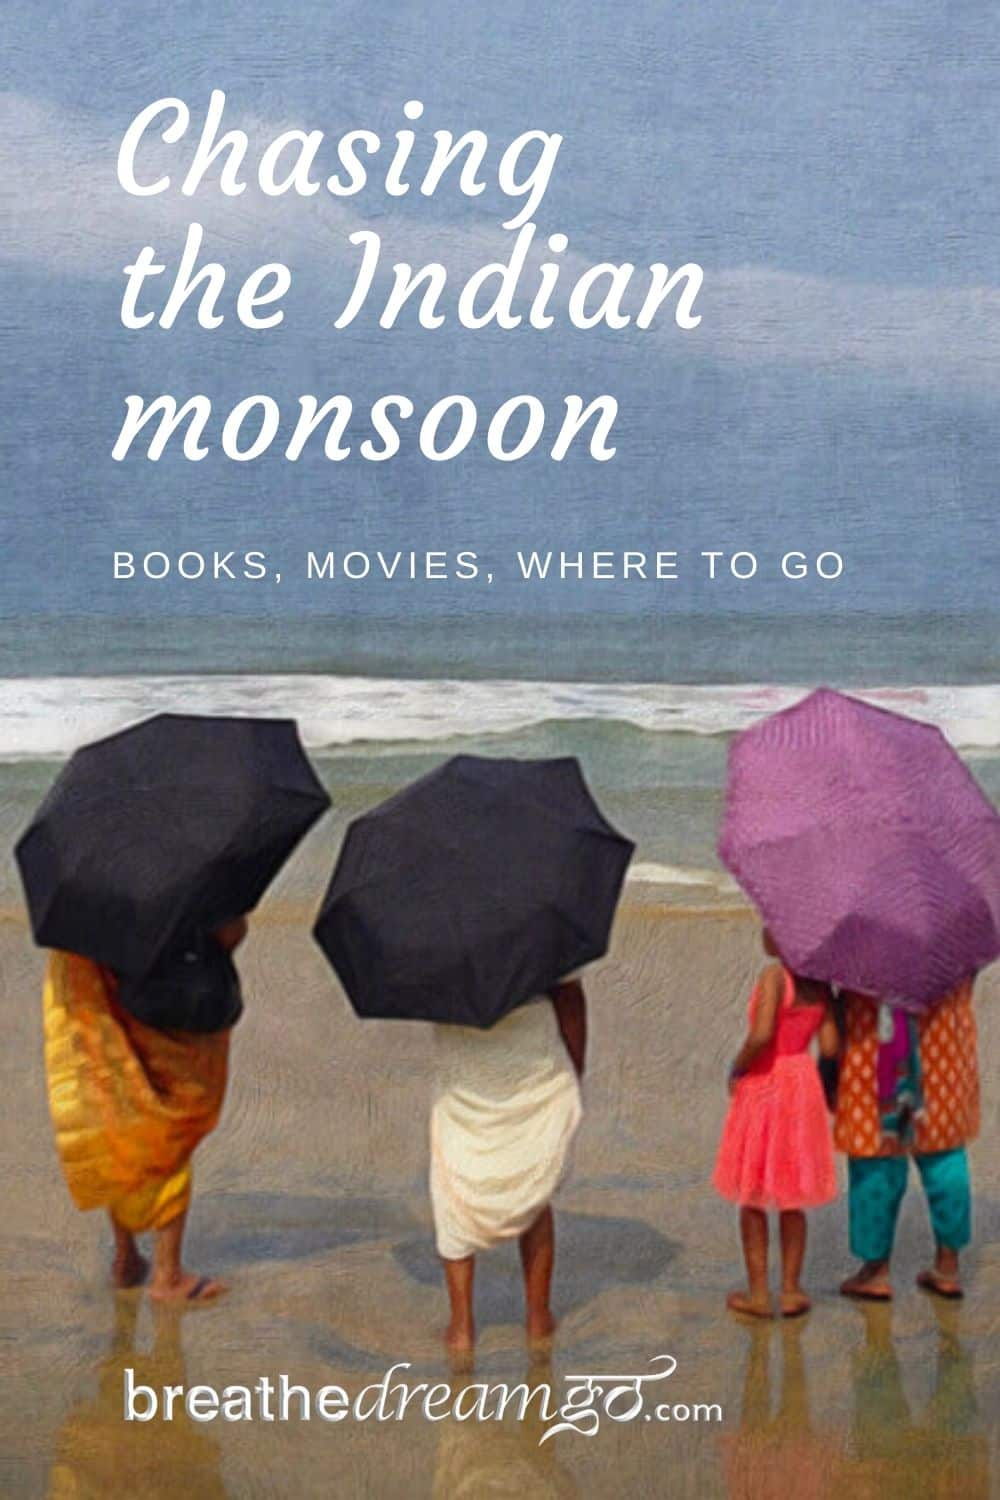 monsoon on the beach in India